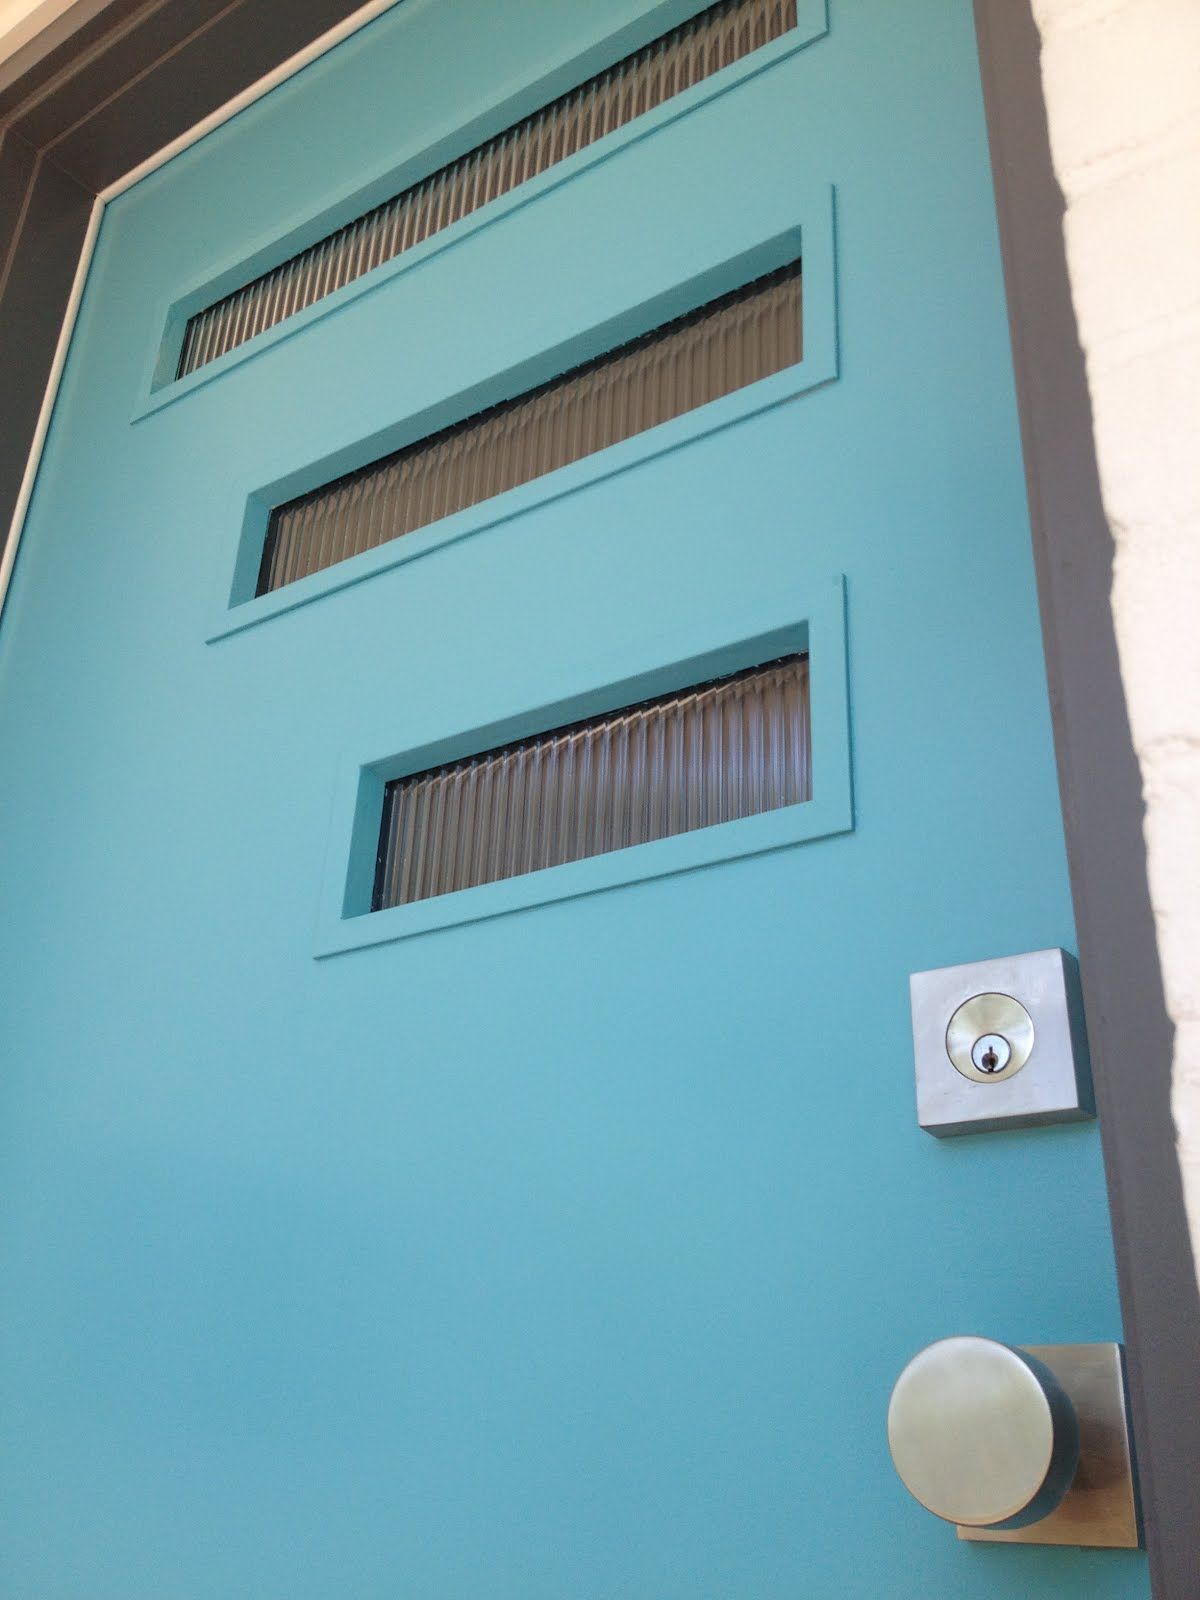 mid-century modern exterior house colors | The Mad Men door knob and ...